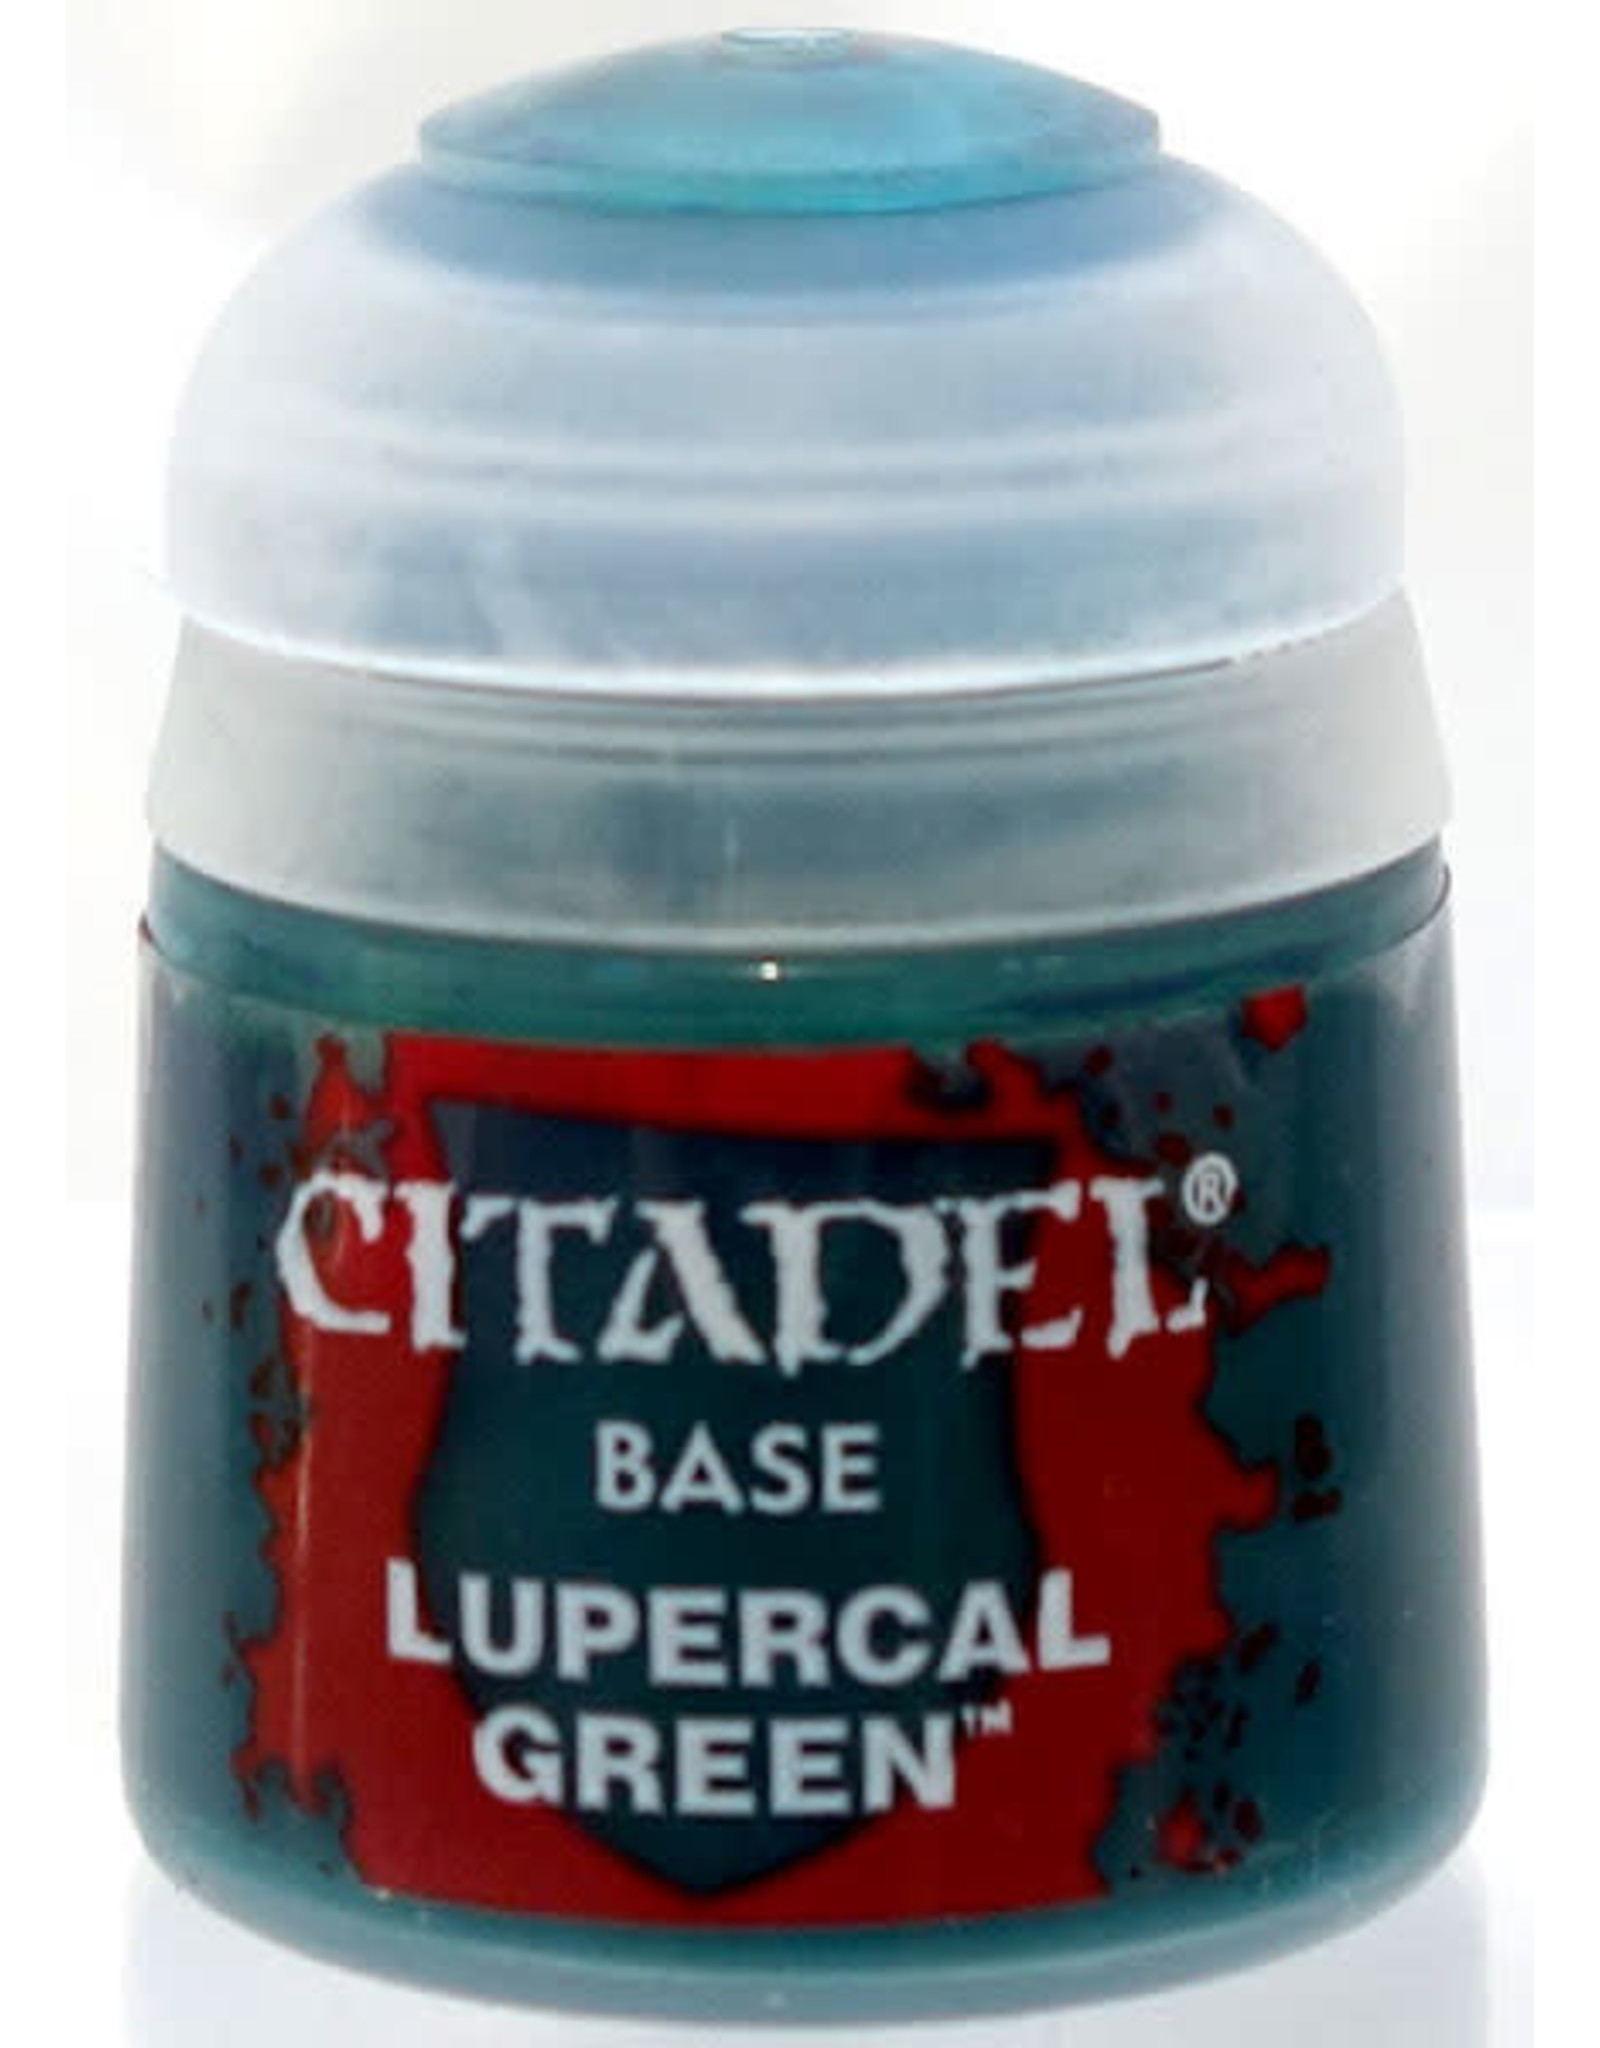 Games Workshop Citadel Paint: Lupercal Green Base 12 ml